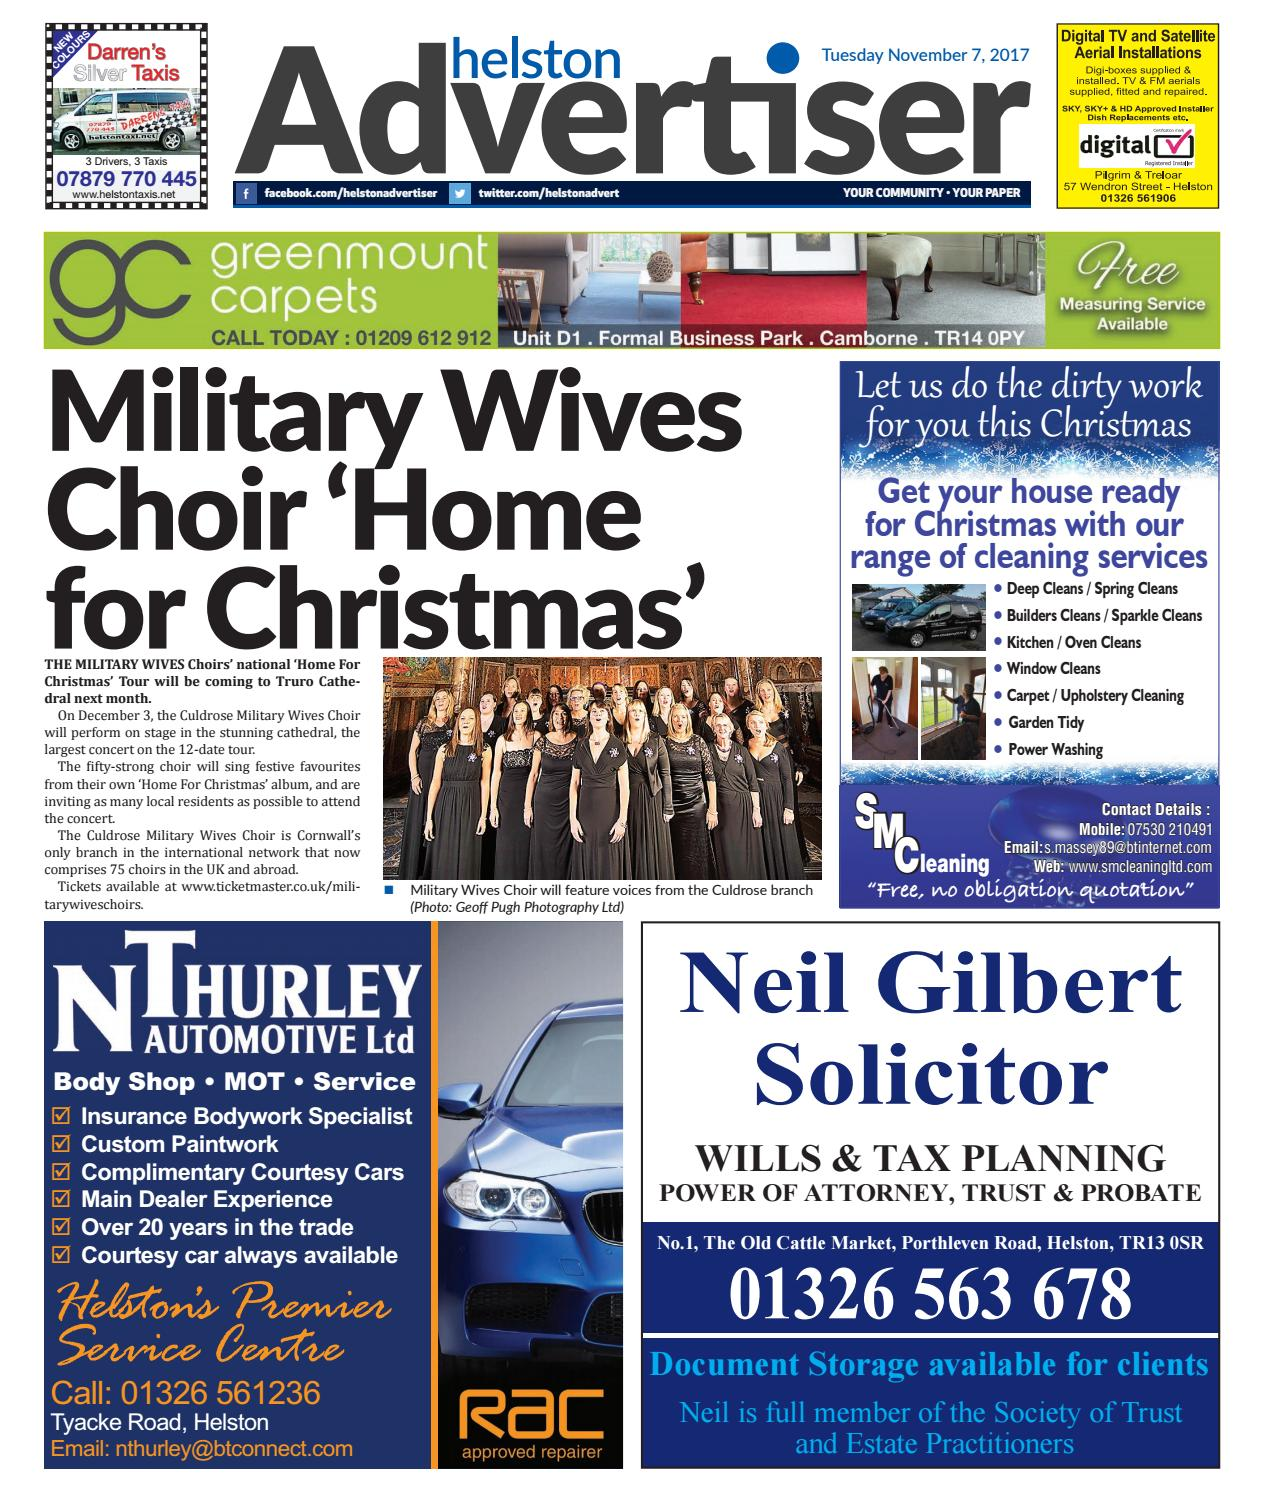 Helston Advertiser - November 7th 2017 by Helston Advertiser - issuu